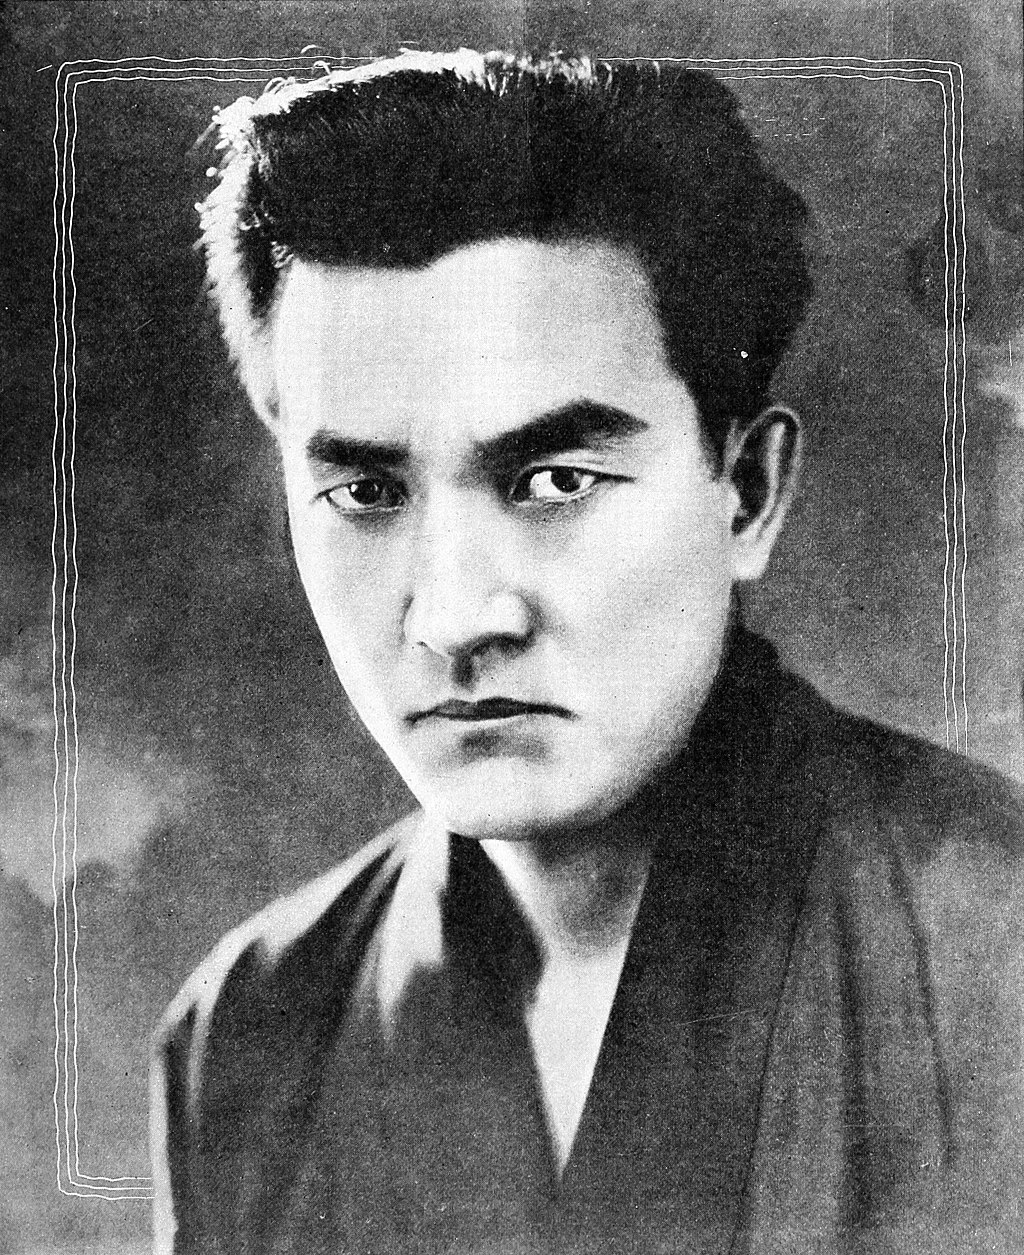 Sessue Hayakawa, 1918, by Apeda Studio